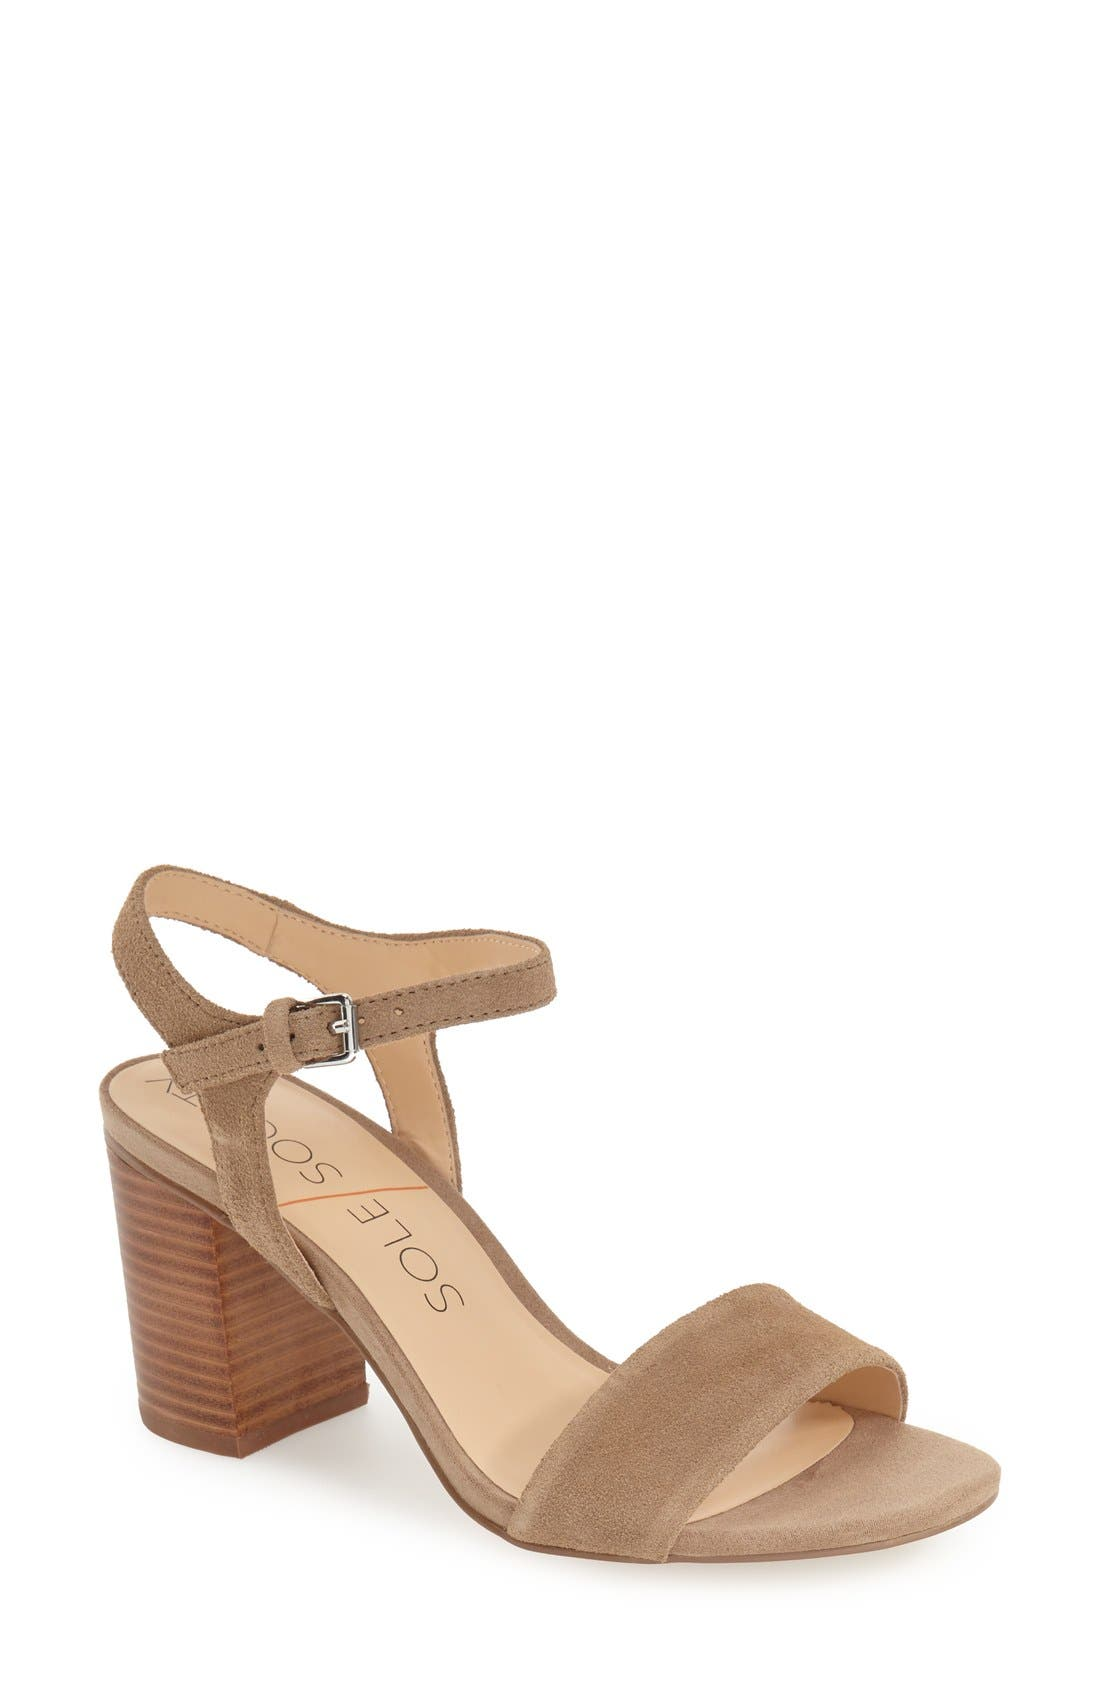 SOLE SOCIETY Linny Ankle Strap Sandal